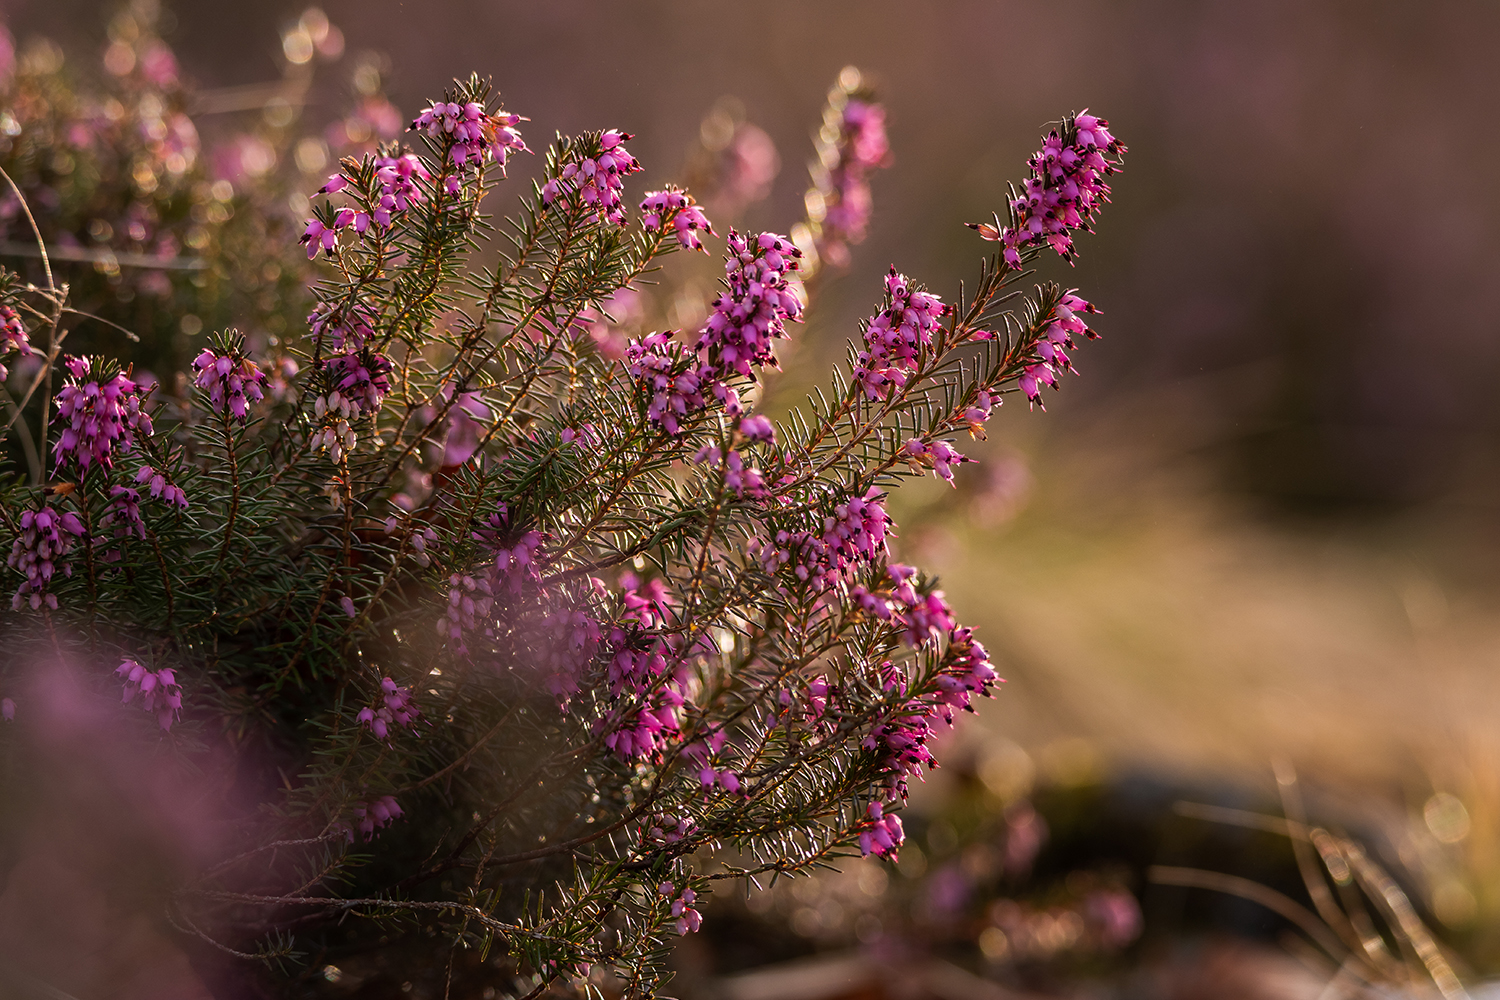 Small pink flowers called Erica example image 1